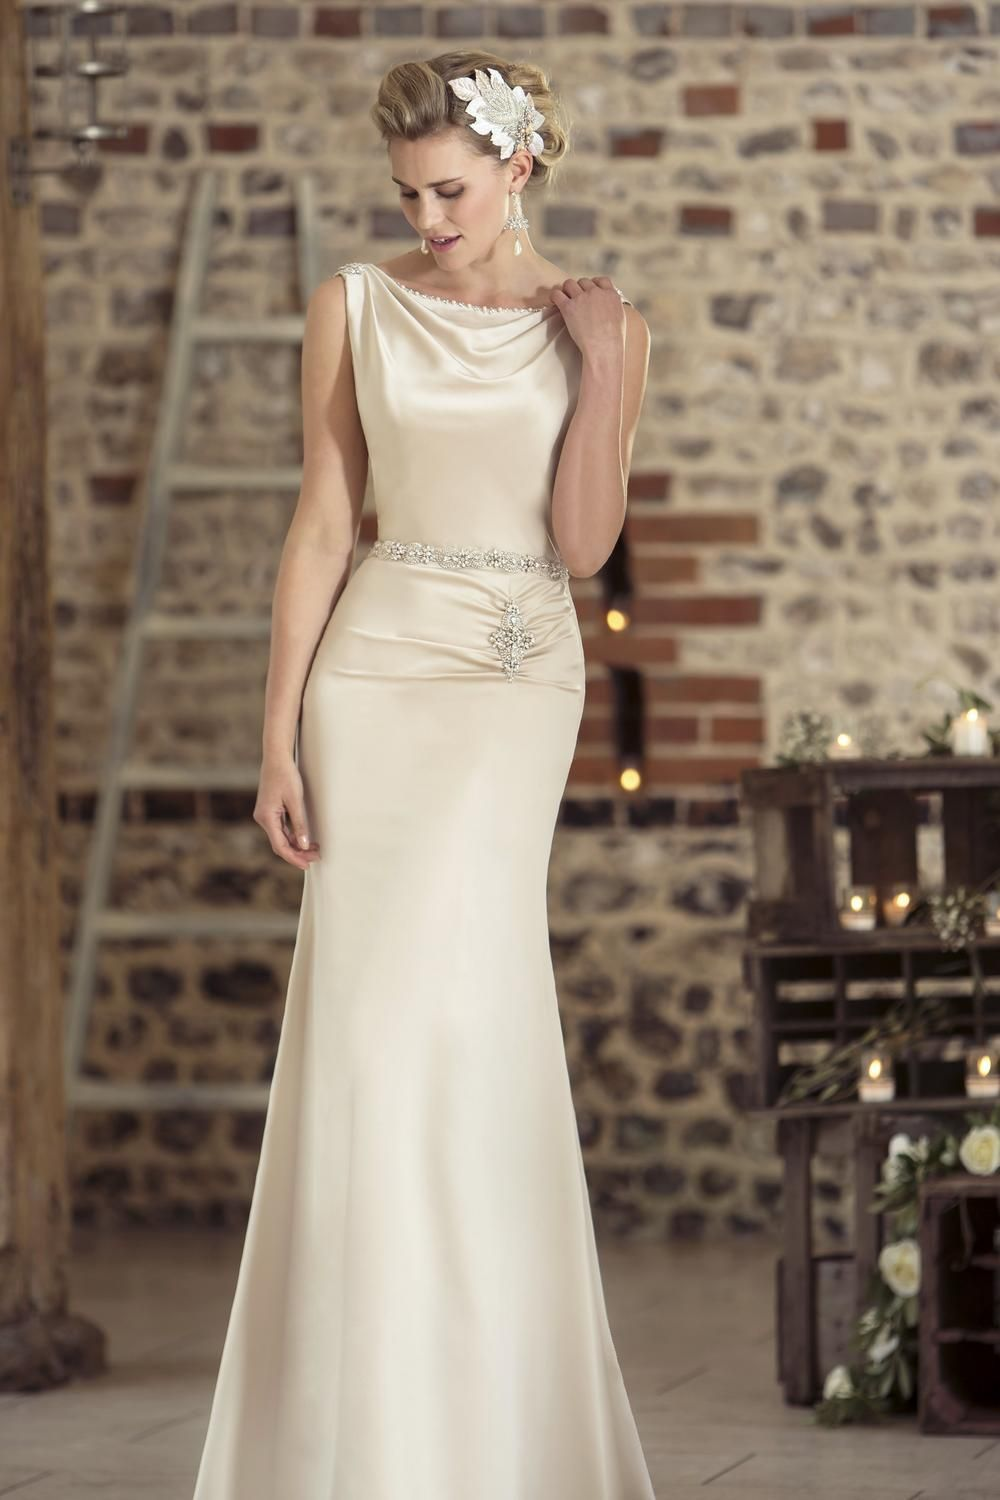 Contemporary wedding dresses and vintage inspired bridal gowns contemporary wedding dresses and vintage inspired bridal gowns w238 true bride ombrellifo Image collections